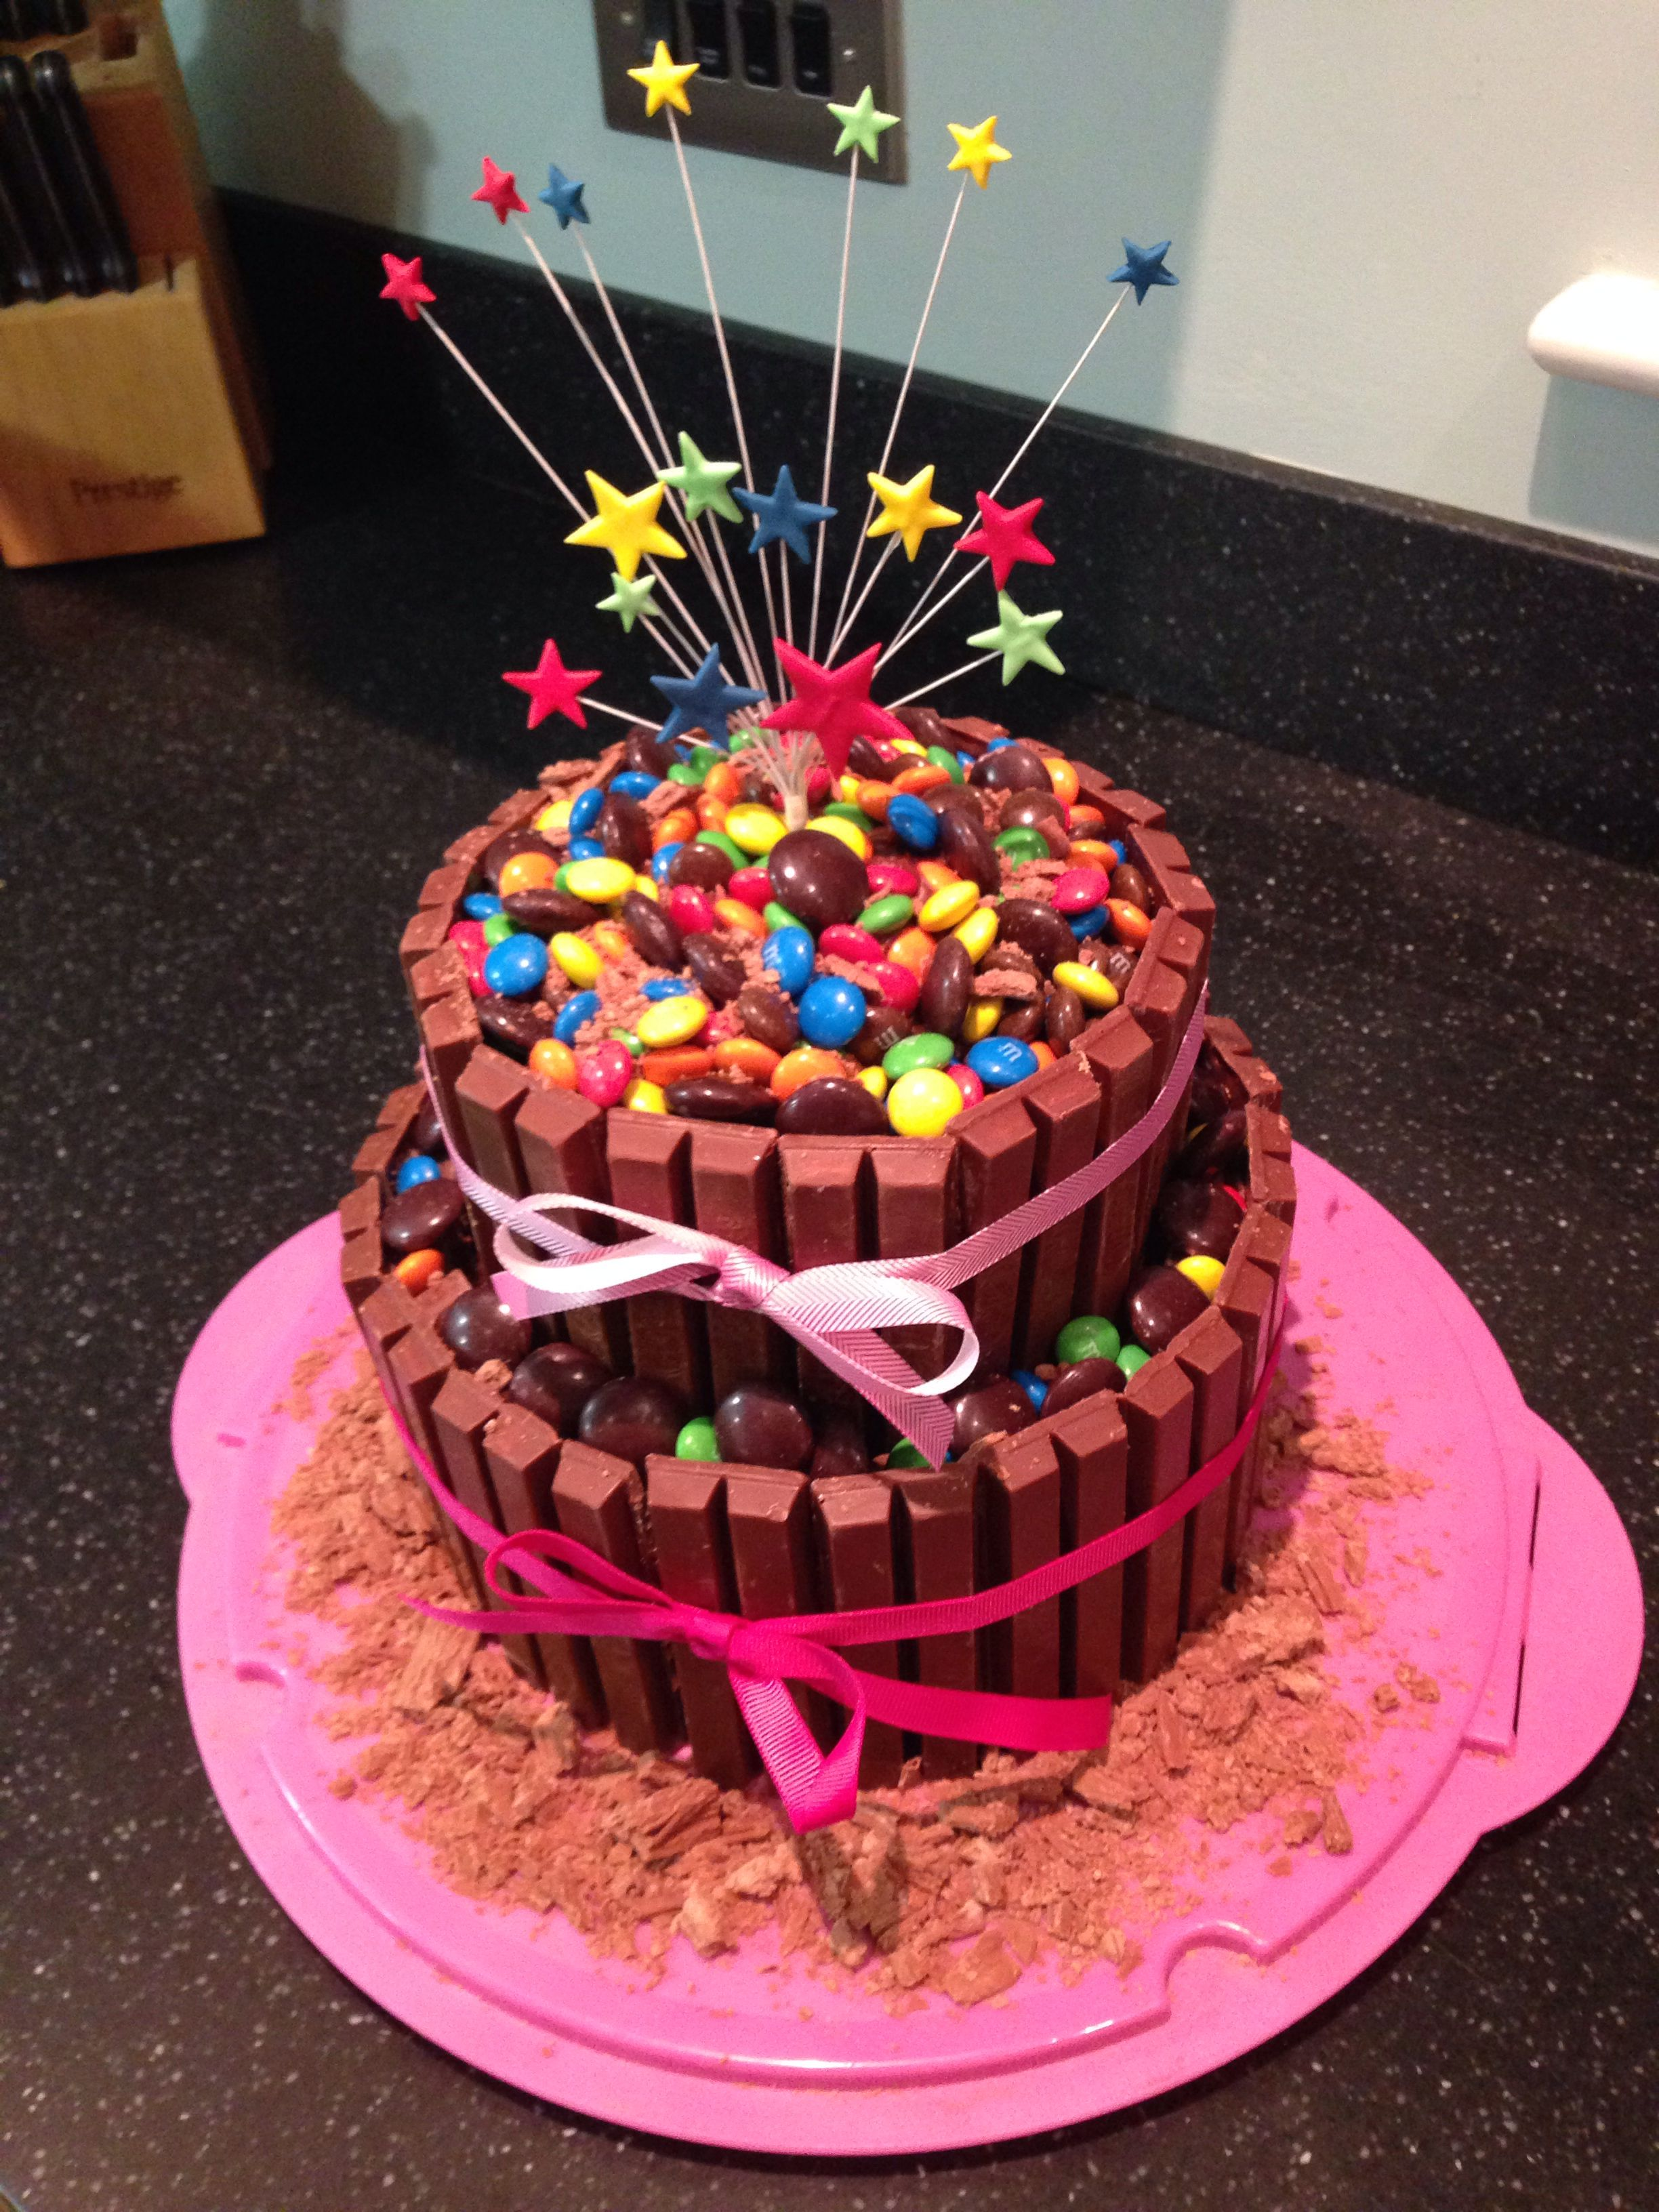 Double Tier Kit Kat Cake With Multi Star Topper And Covered In